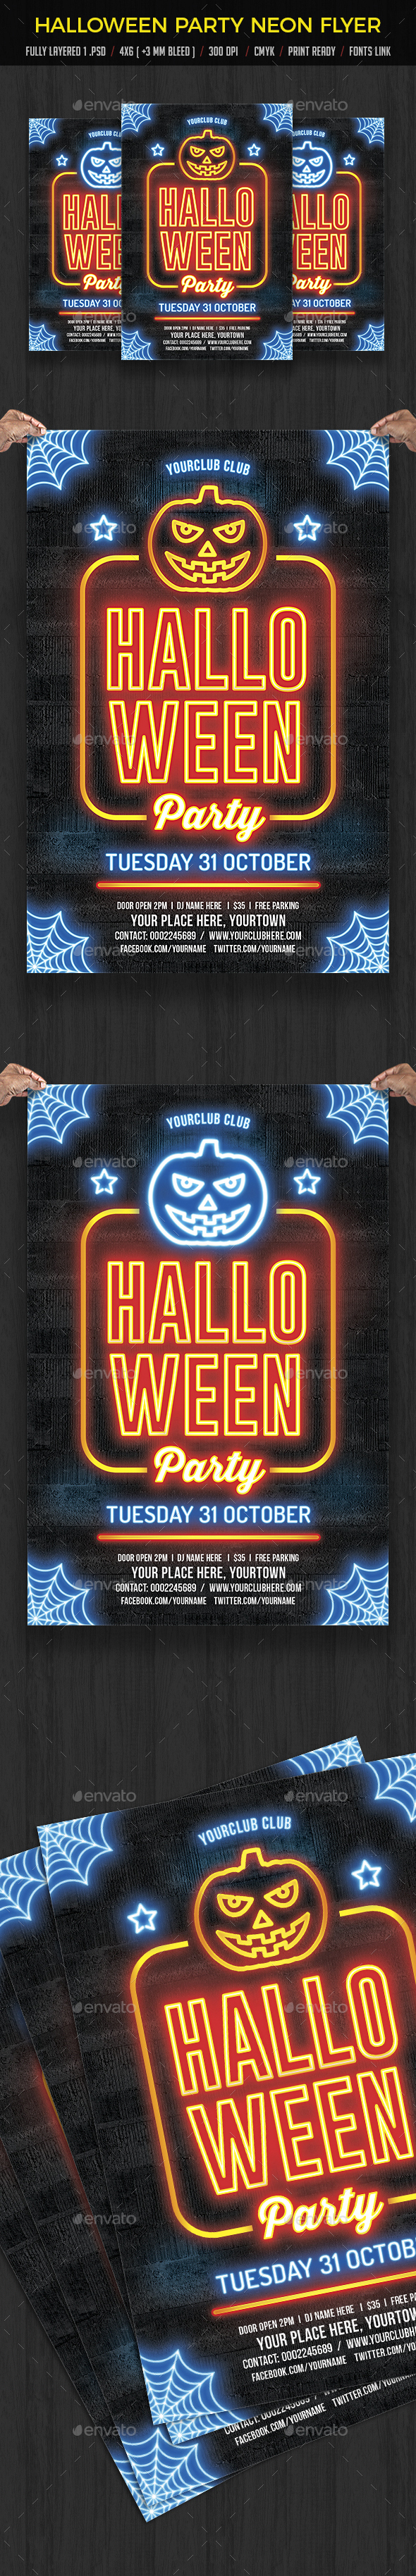 Halloween Party Neon Flyer - Events Flyers